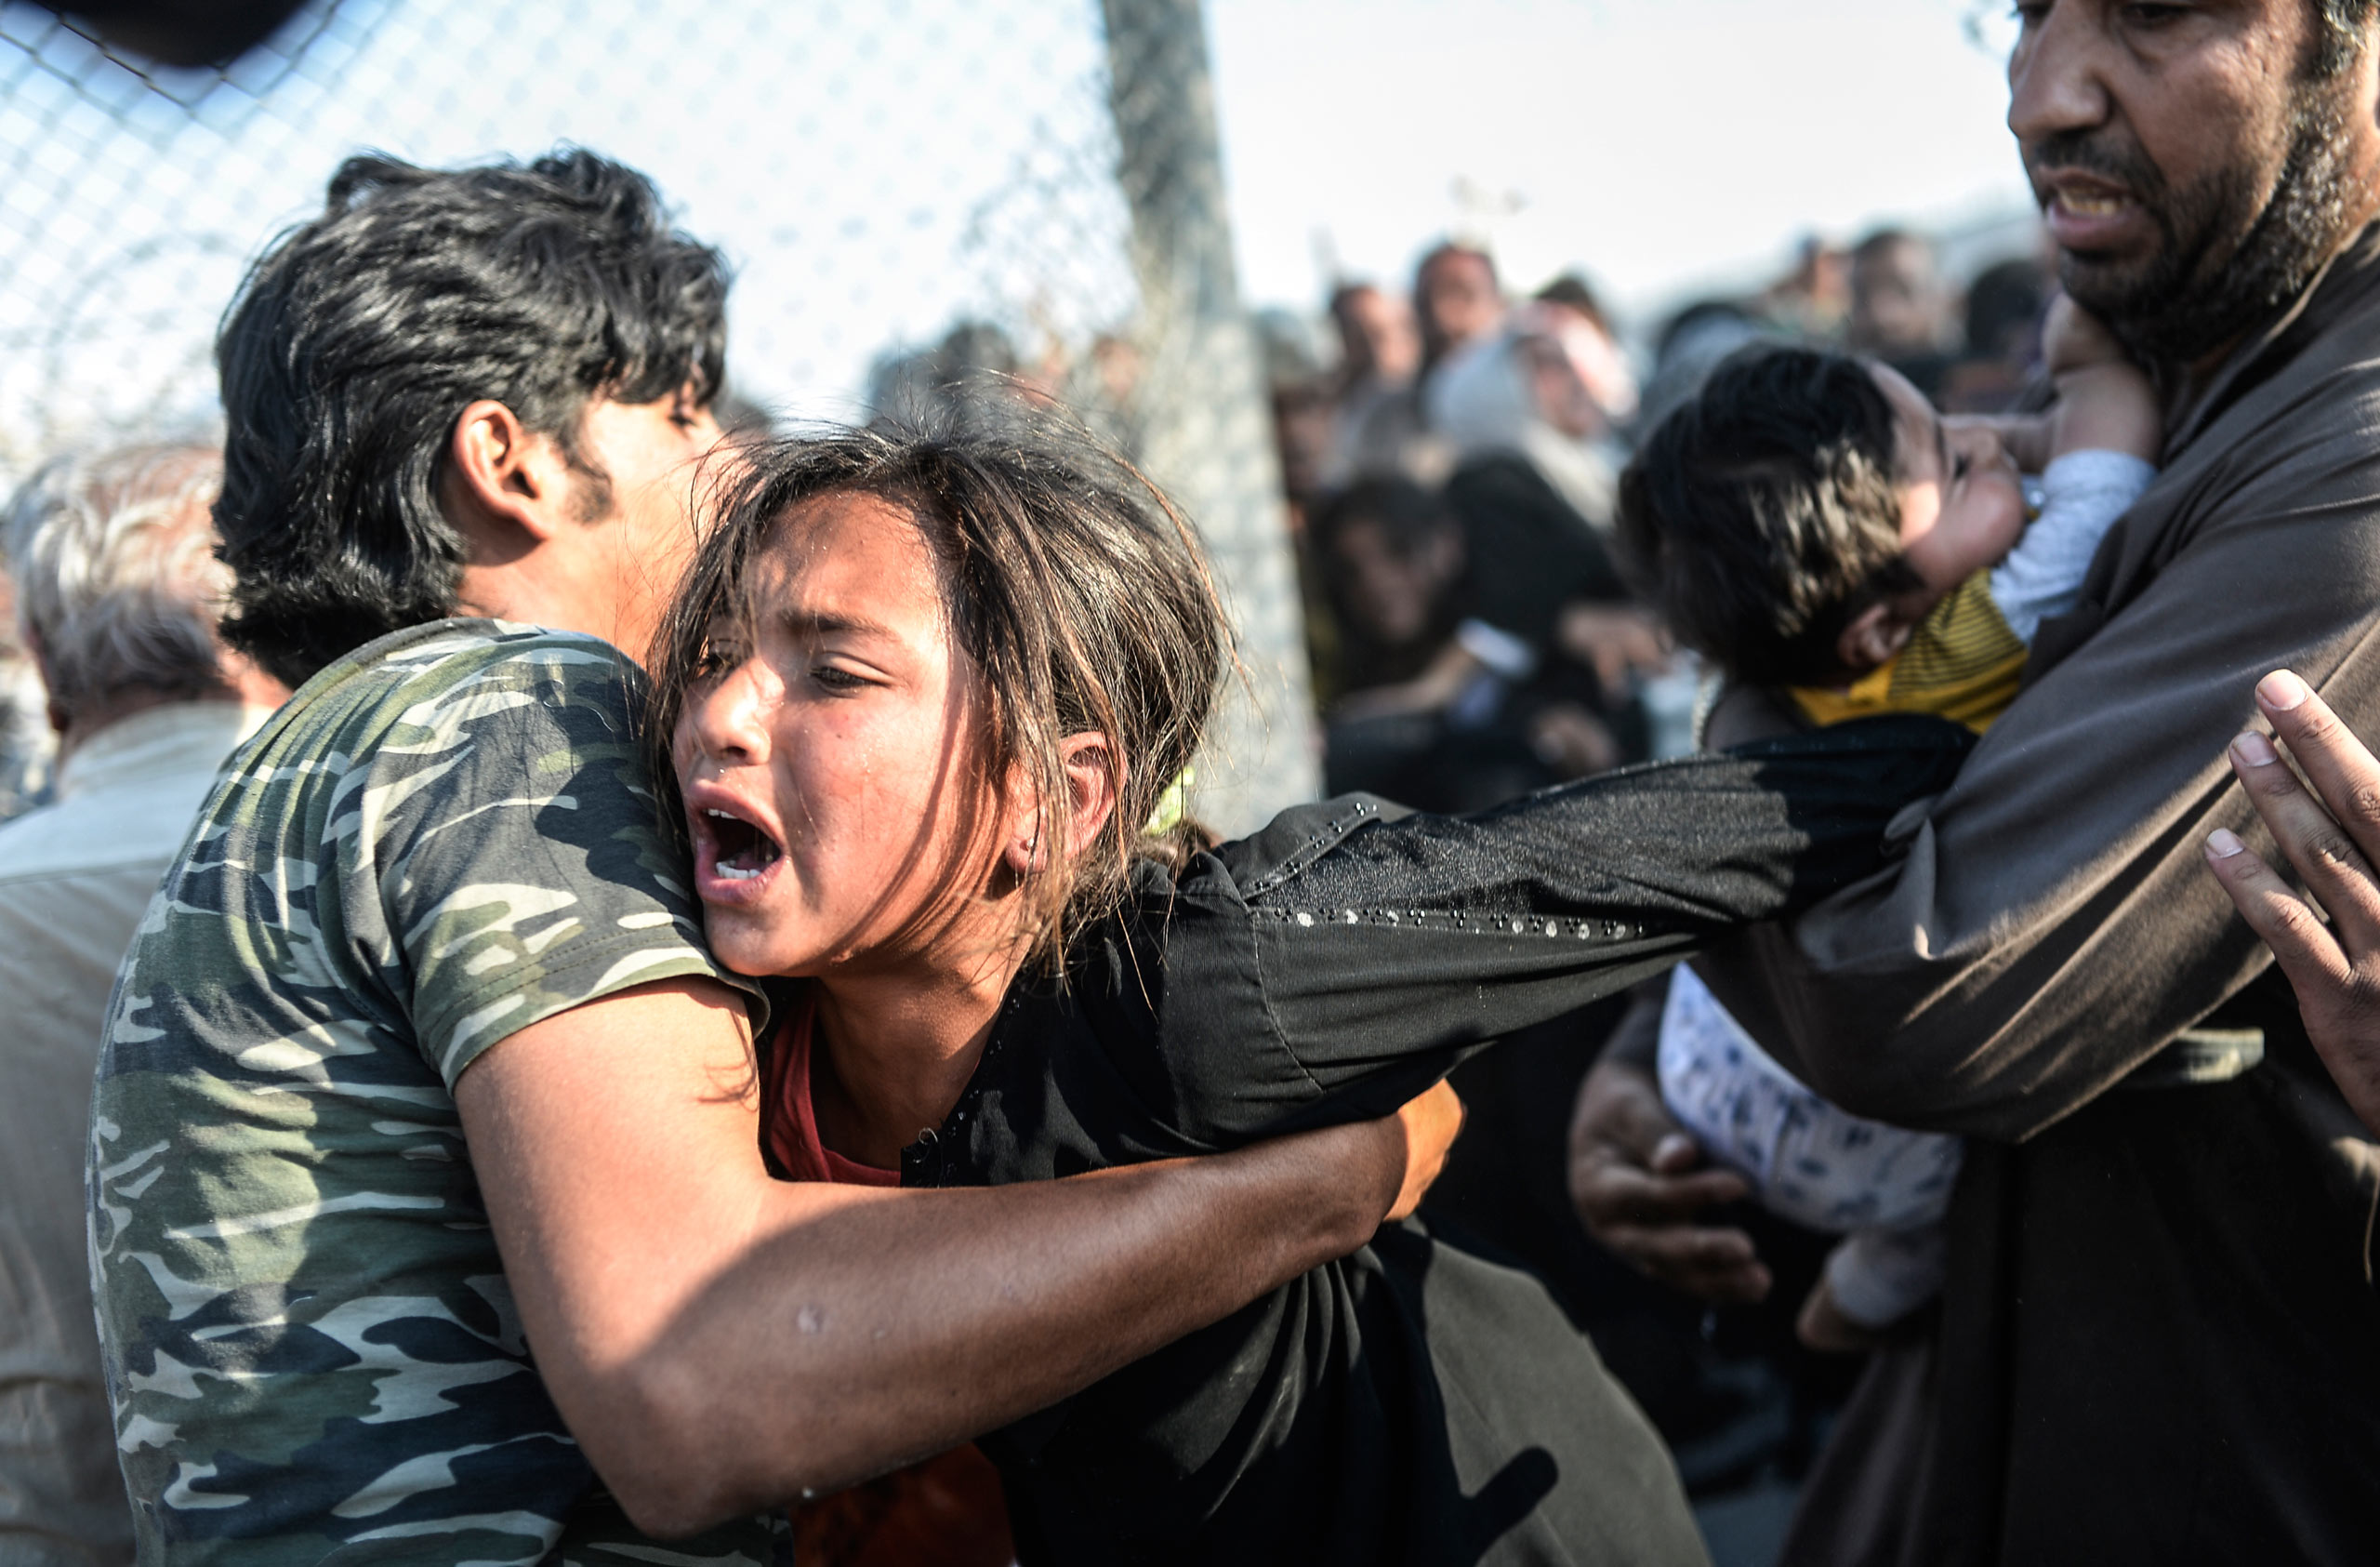 Thousands of Syrians break through the wired ripped fences, crossing illegally from the Syrian town of Tell Abyad to Akçakale, in the Şanlıurfa province. June 14, 2015.